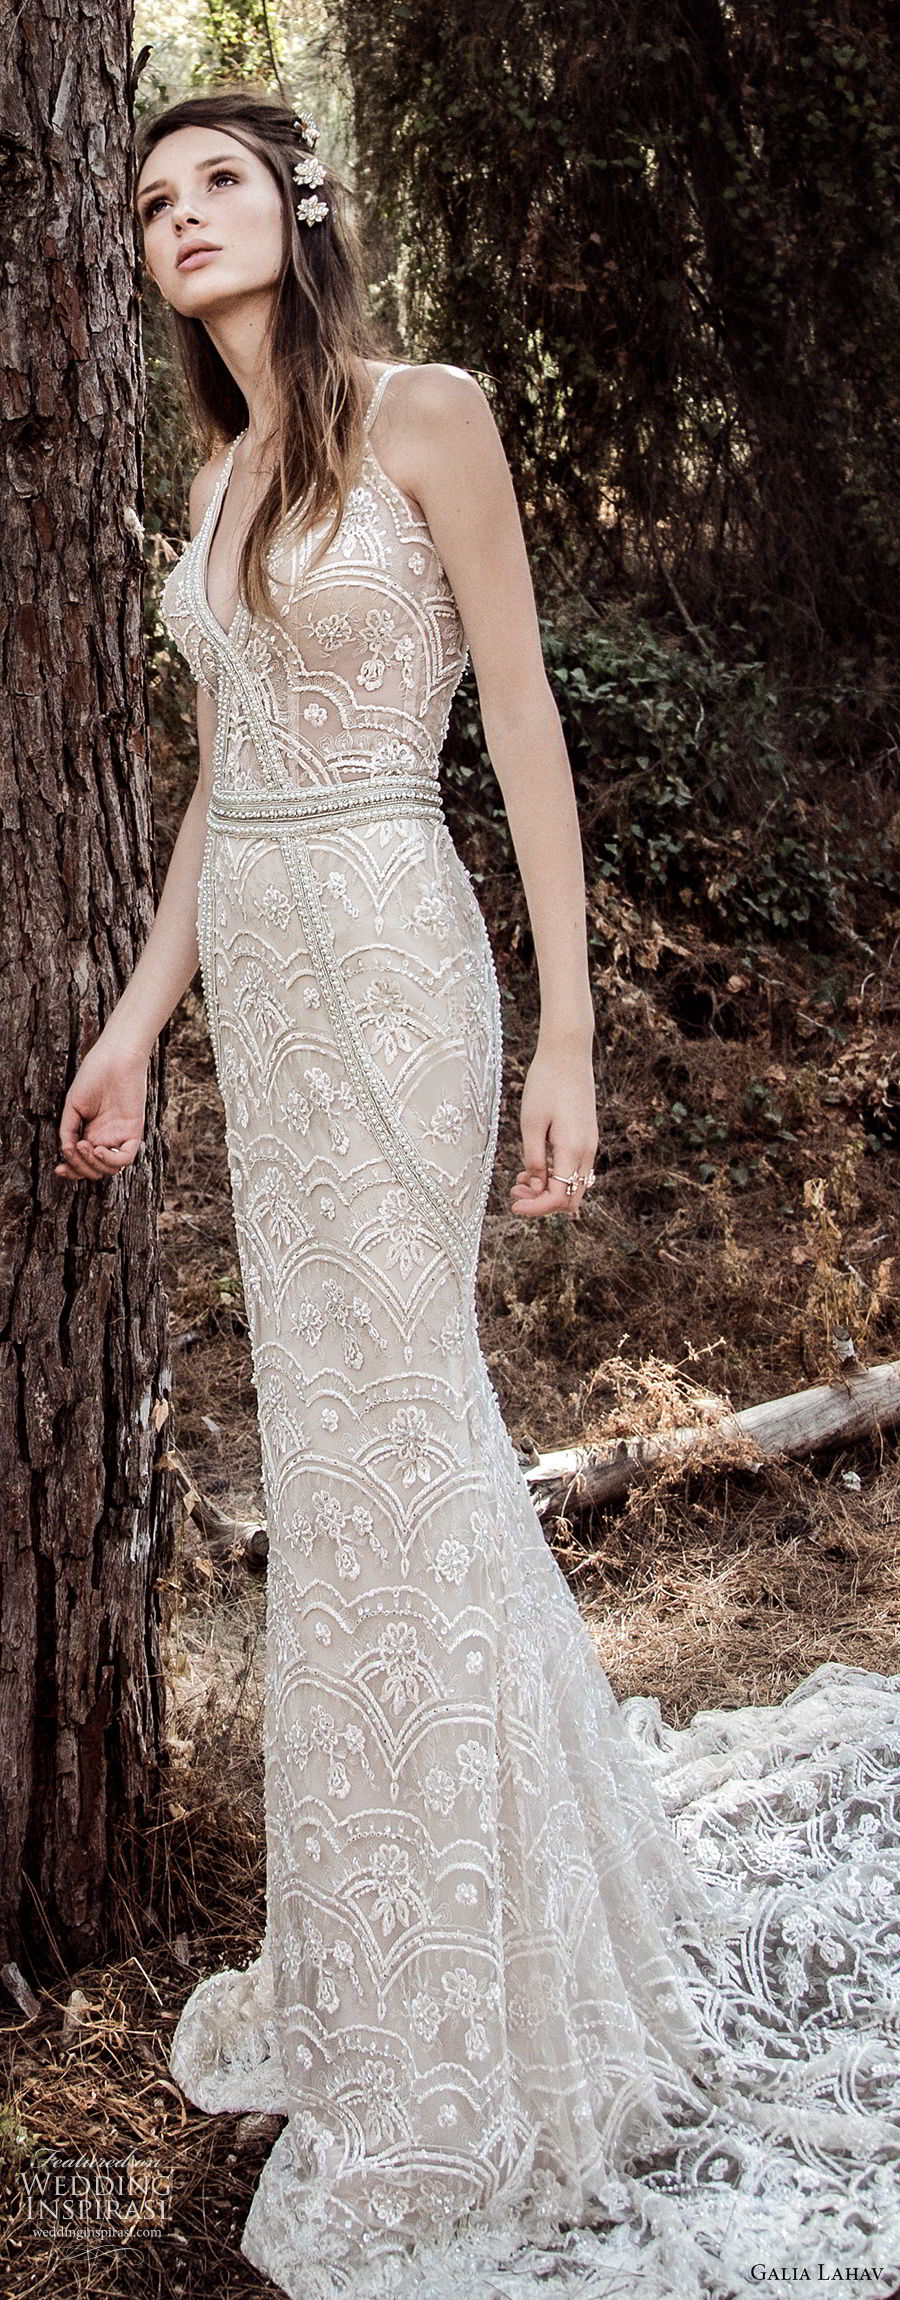 galia lahav gala 4 2018 bridal sleeveless thin strap v neck full embellishment elegant fit and flare mermaid wedding dress open strap back chapel train (907) lv